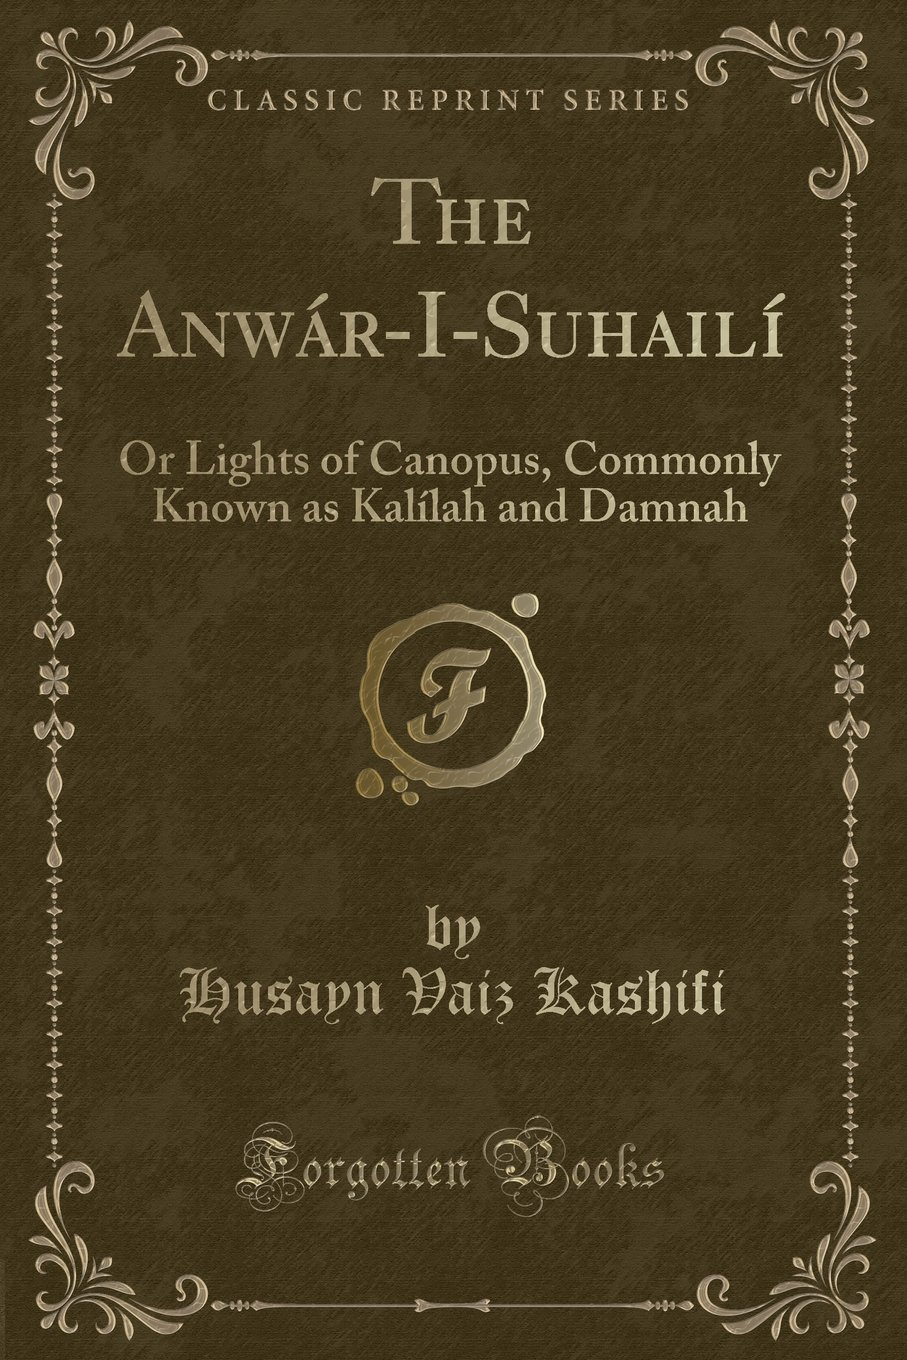 Download The Anwár-I-Suhailí: Or Lights of Canopus, Commonly Known as Kalílah and Damnah (Classic Reprint) ebook